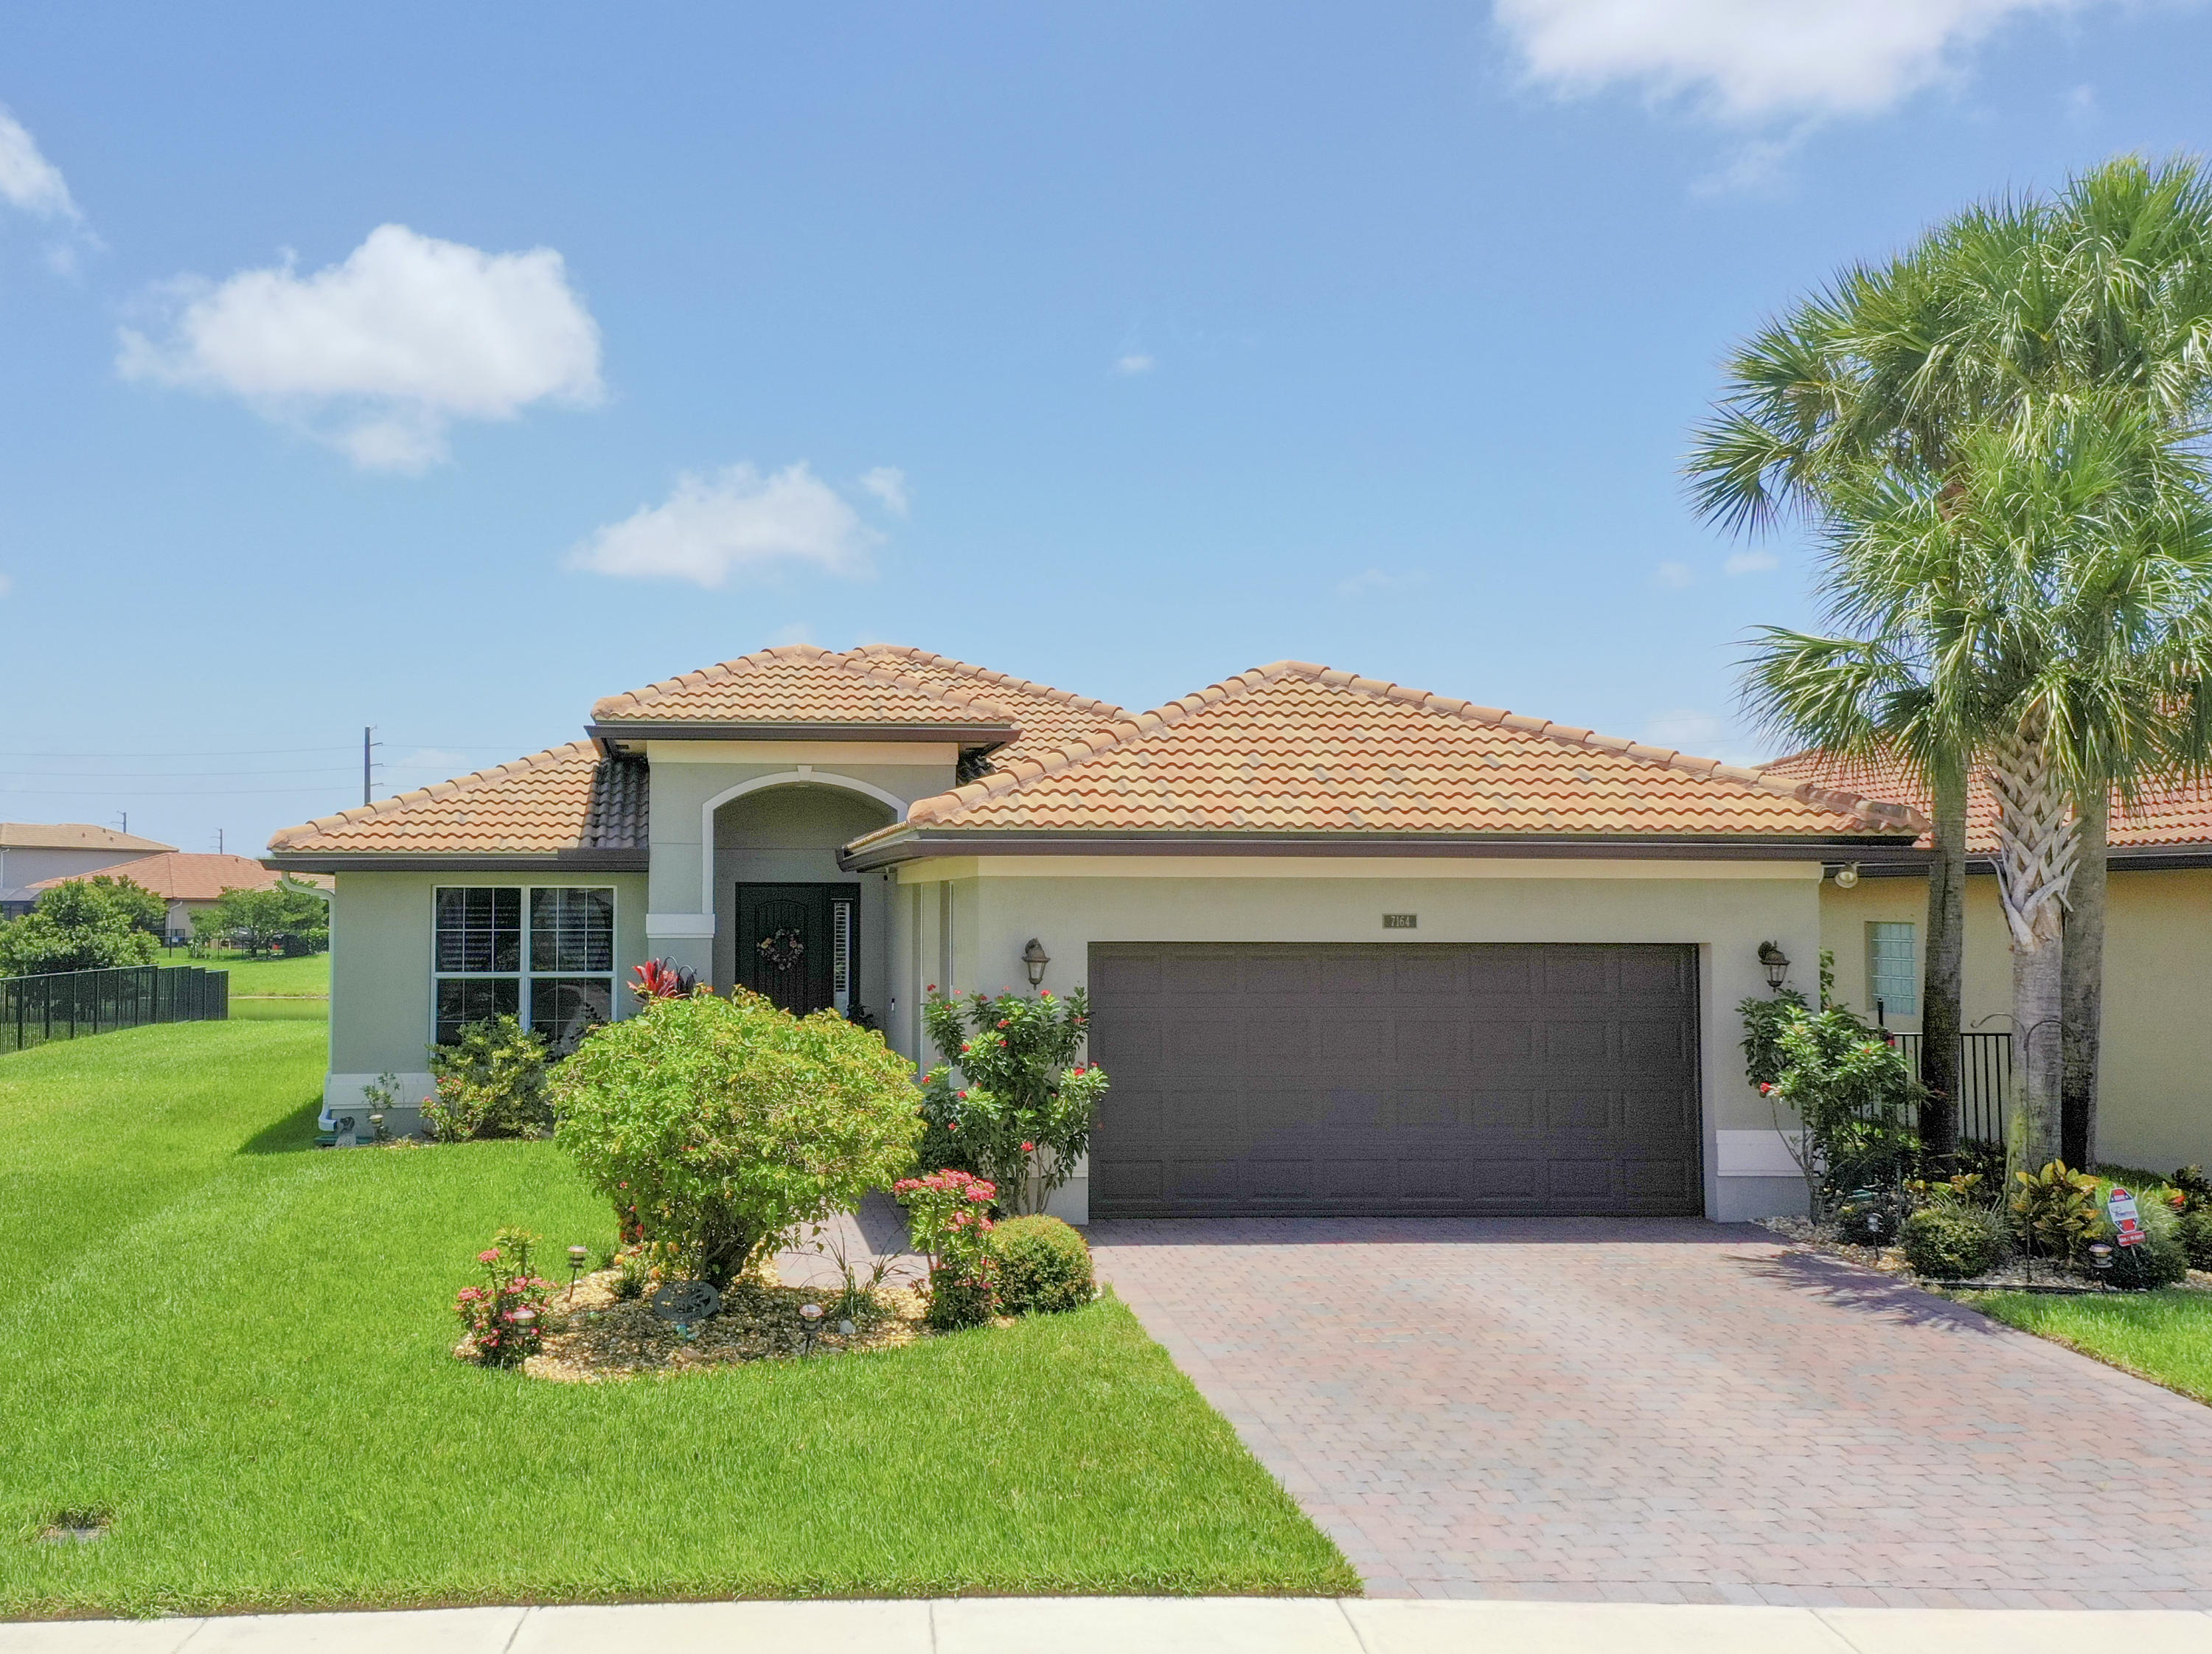 7164 Damita Drive, Lake Worth, FL 33463